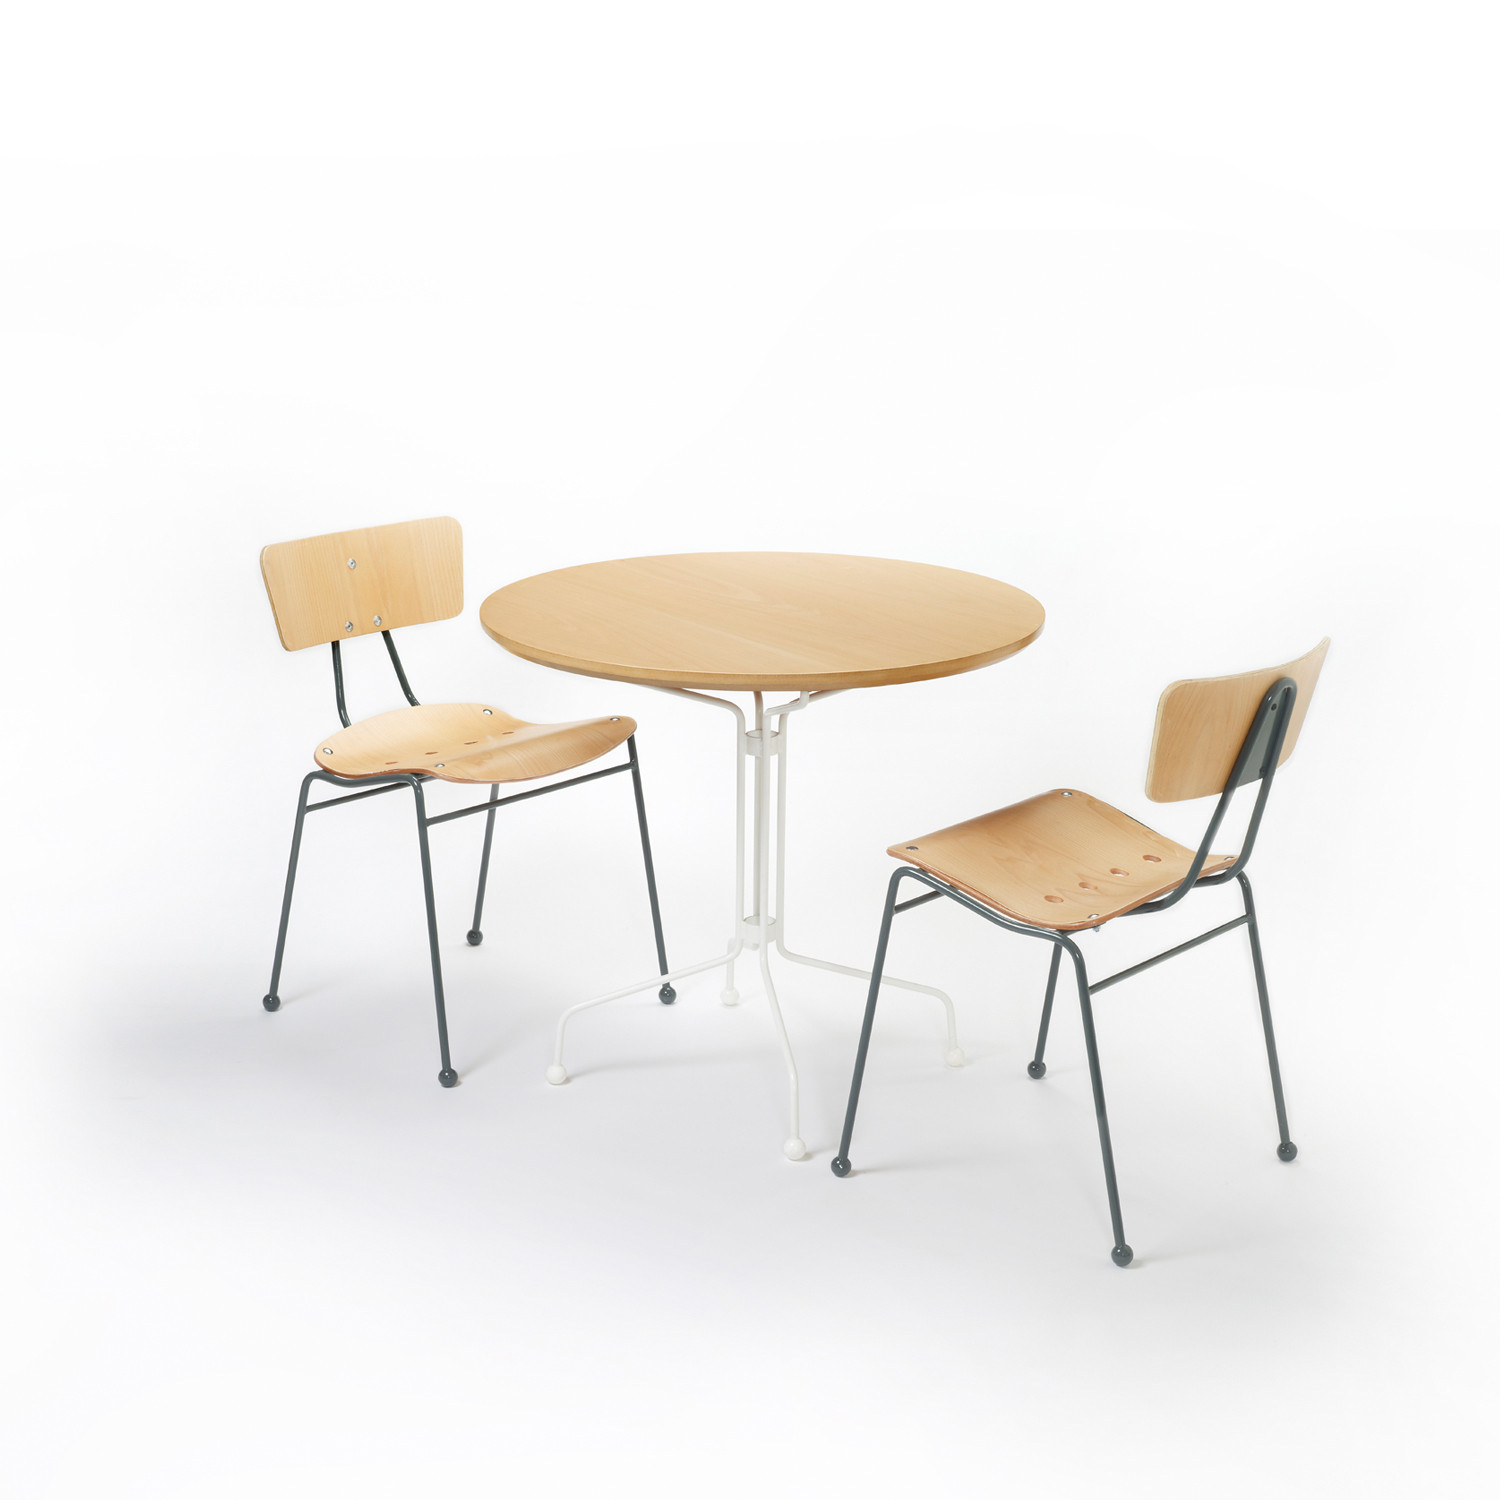 Gazelle Table by Race Furniture